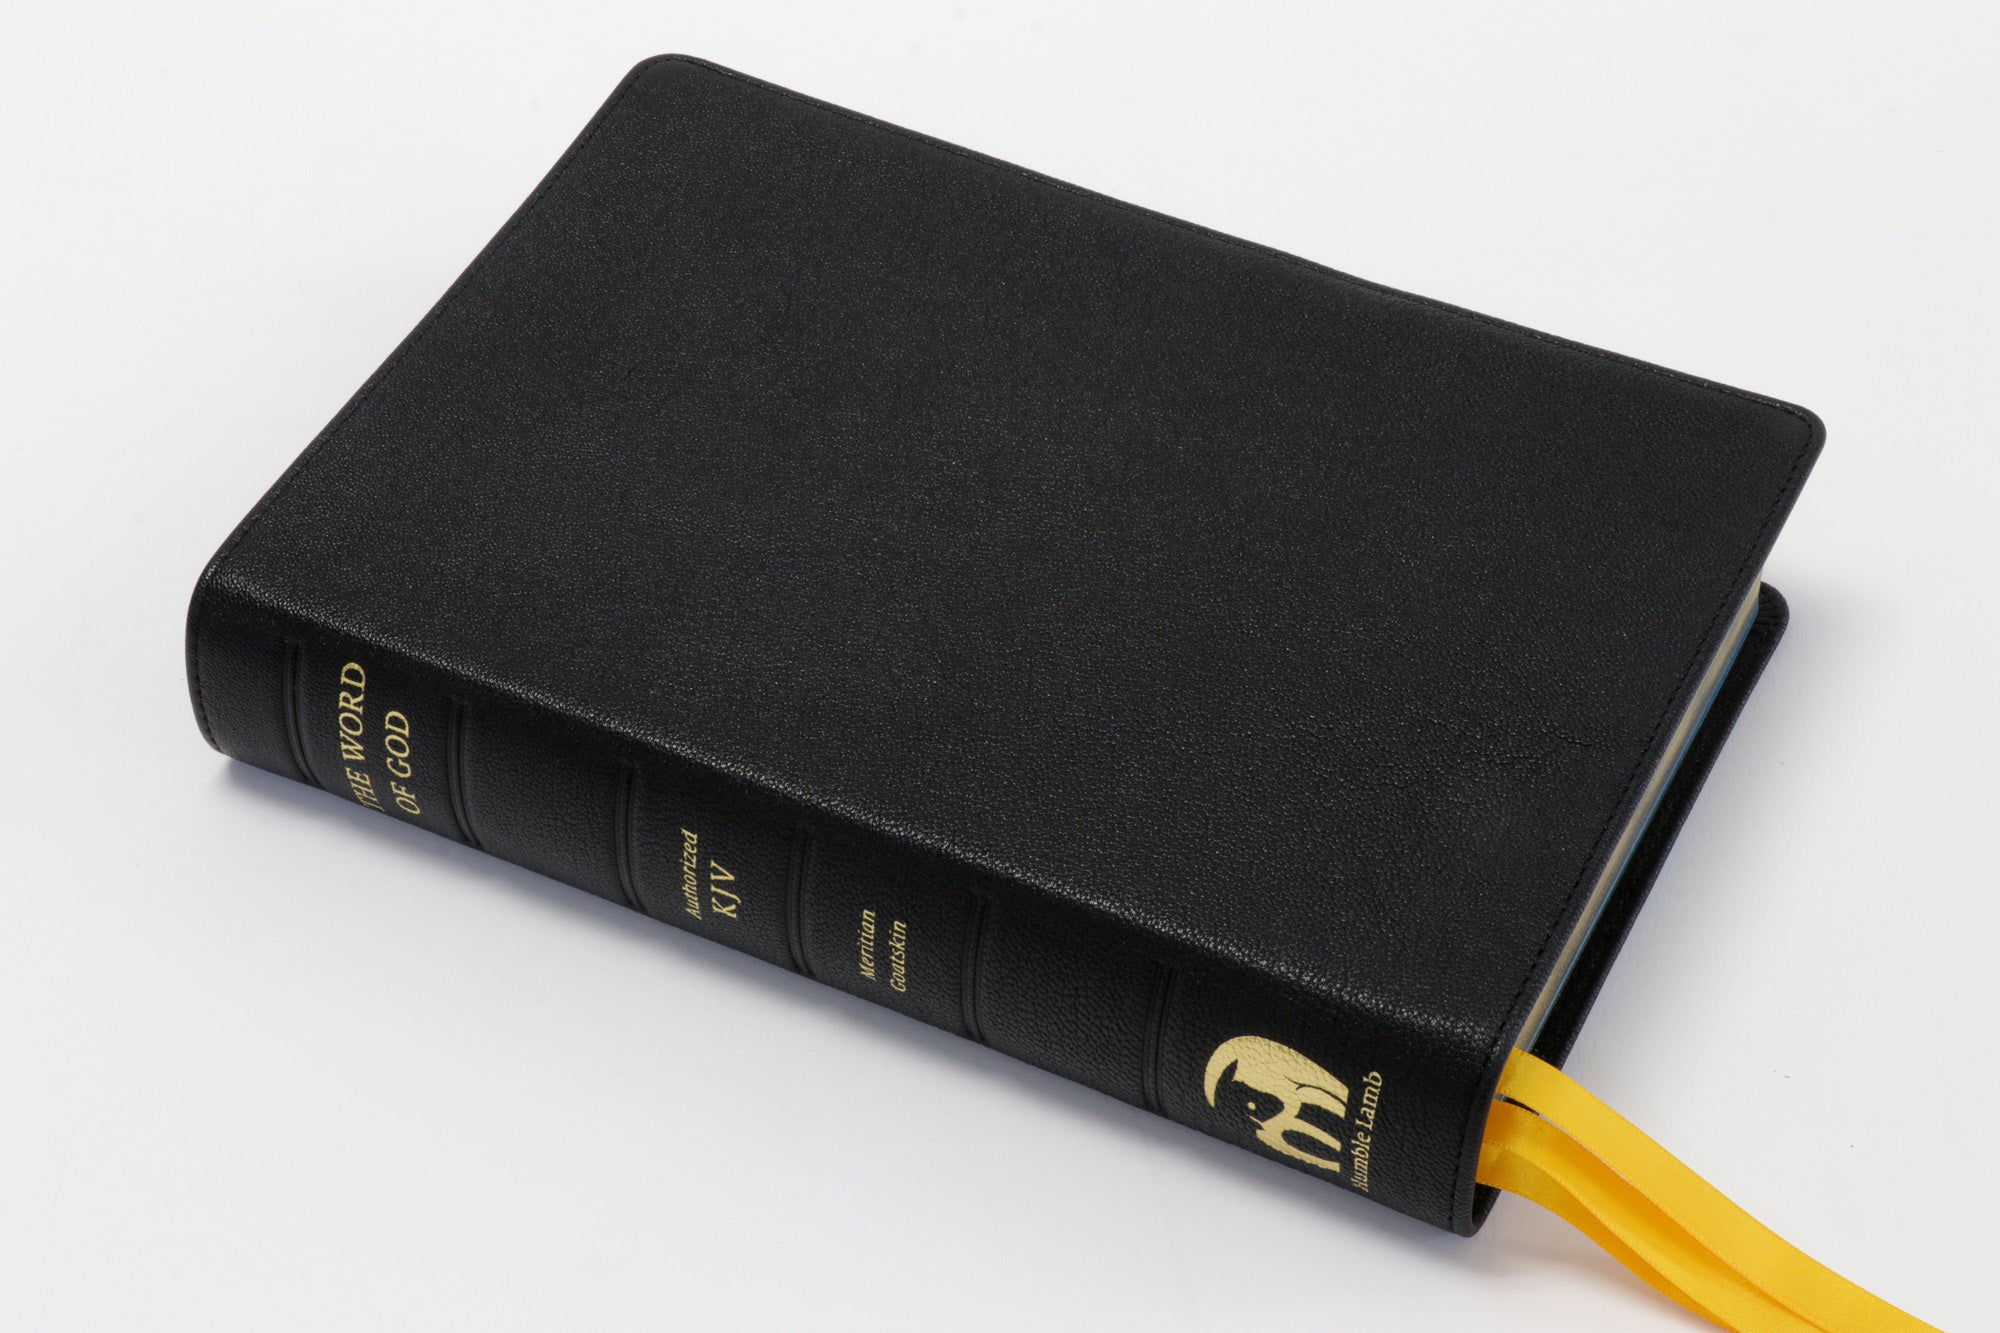 KJV Lion - Black - Premium Bible with illustrations from Gustave Dore